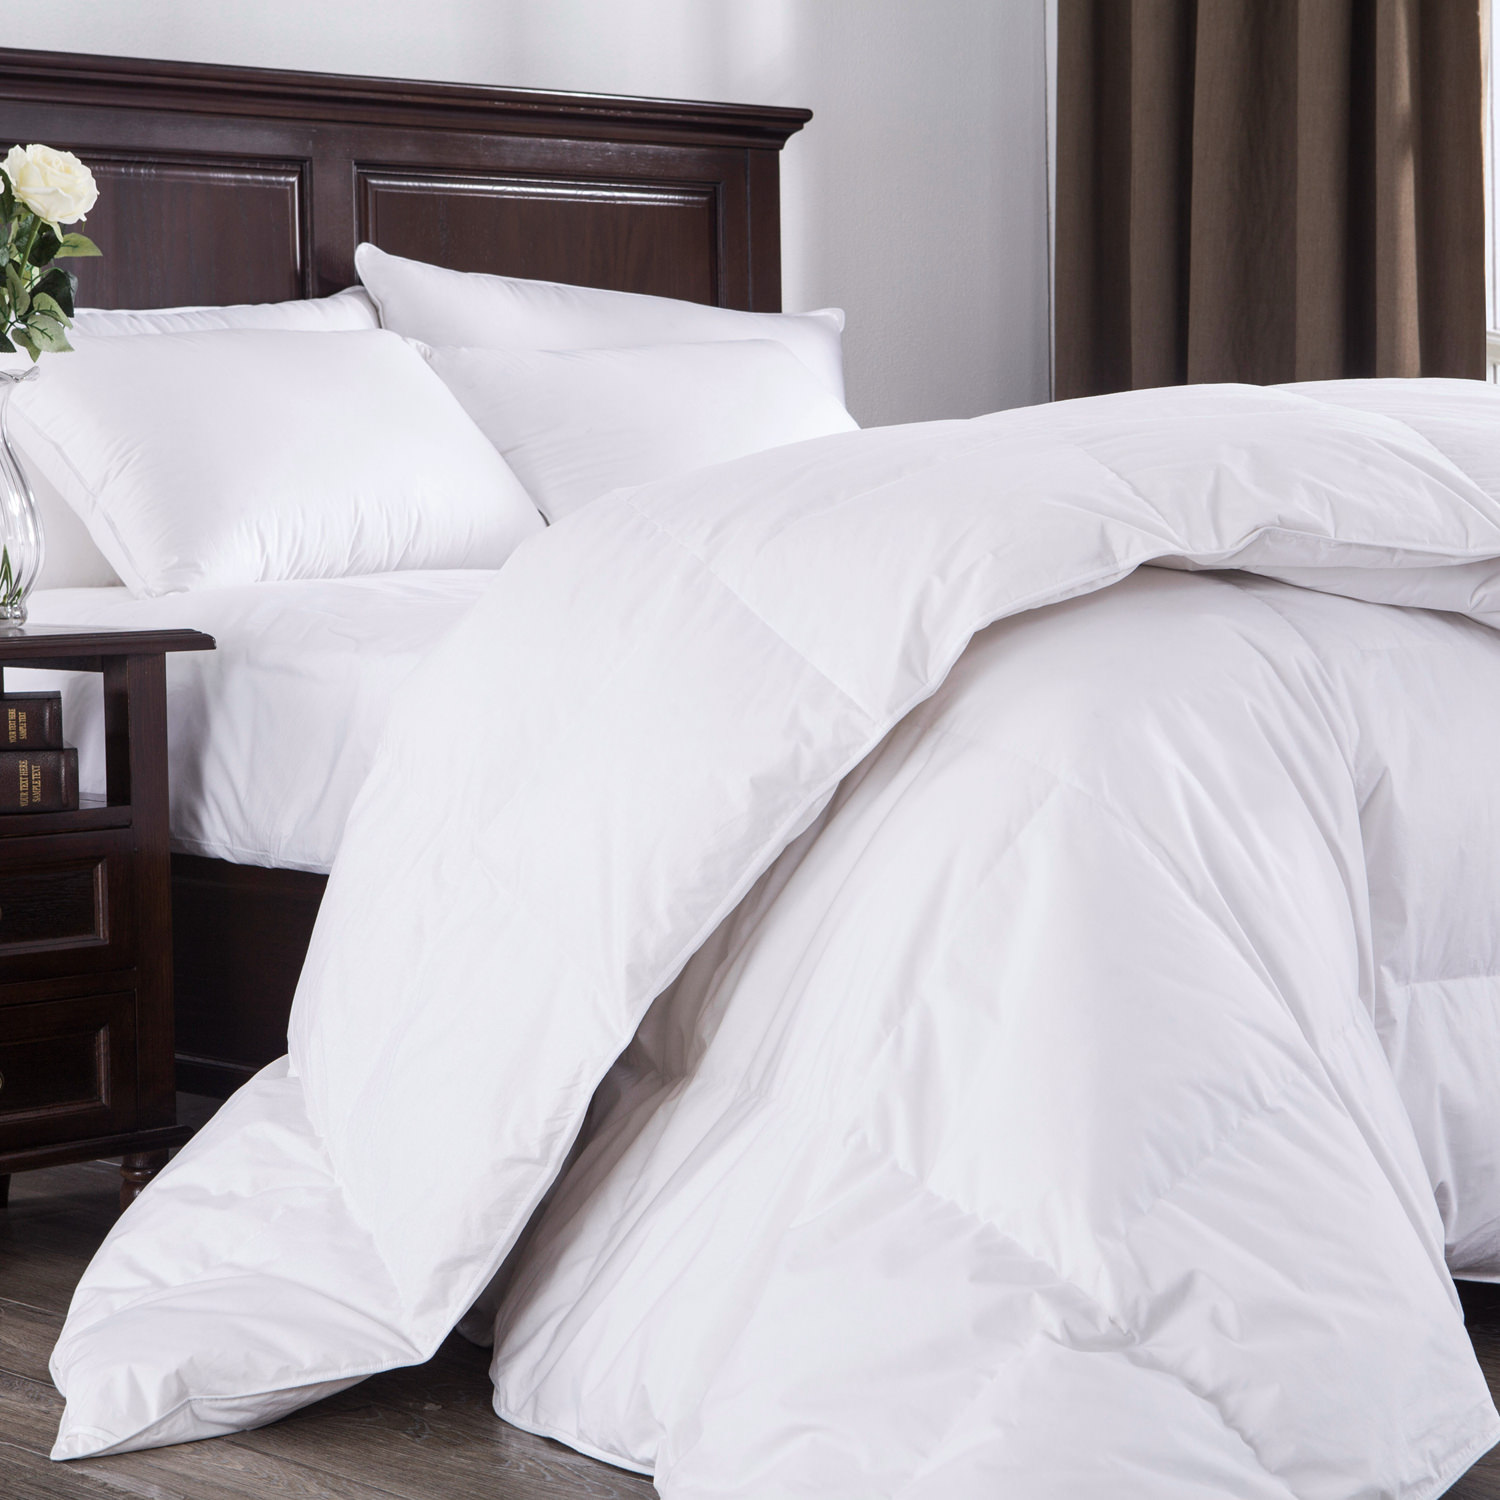 Puredown 800 Fill Power White Goose Down Comforter, 700 Thread Count, 100% Cotton Fabric, King Size, White